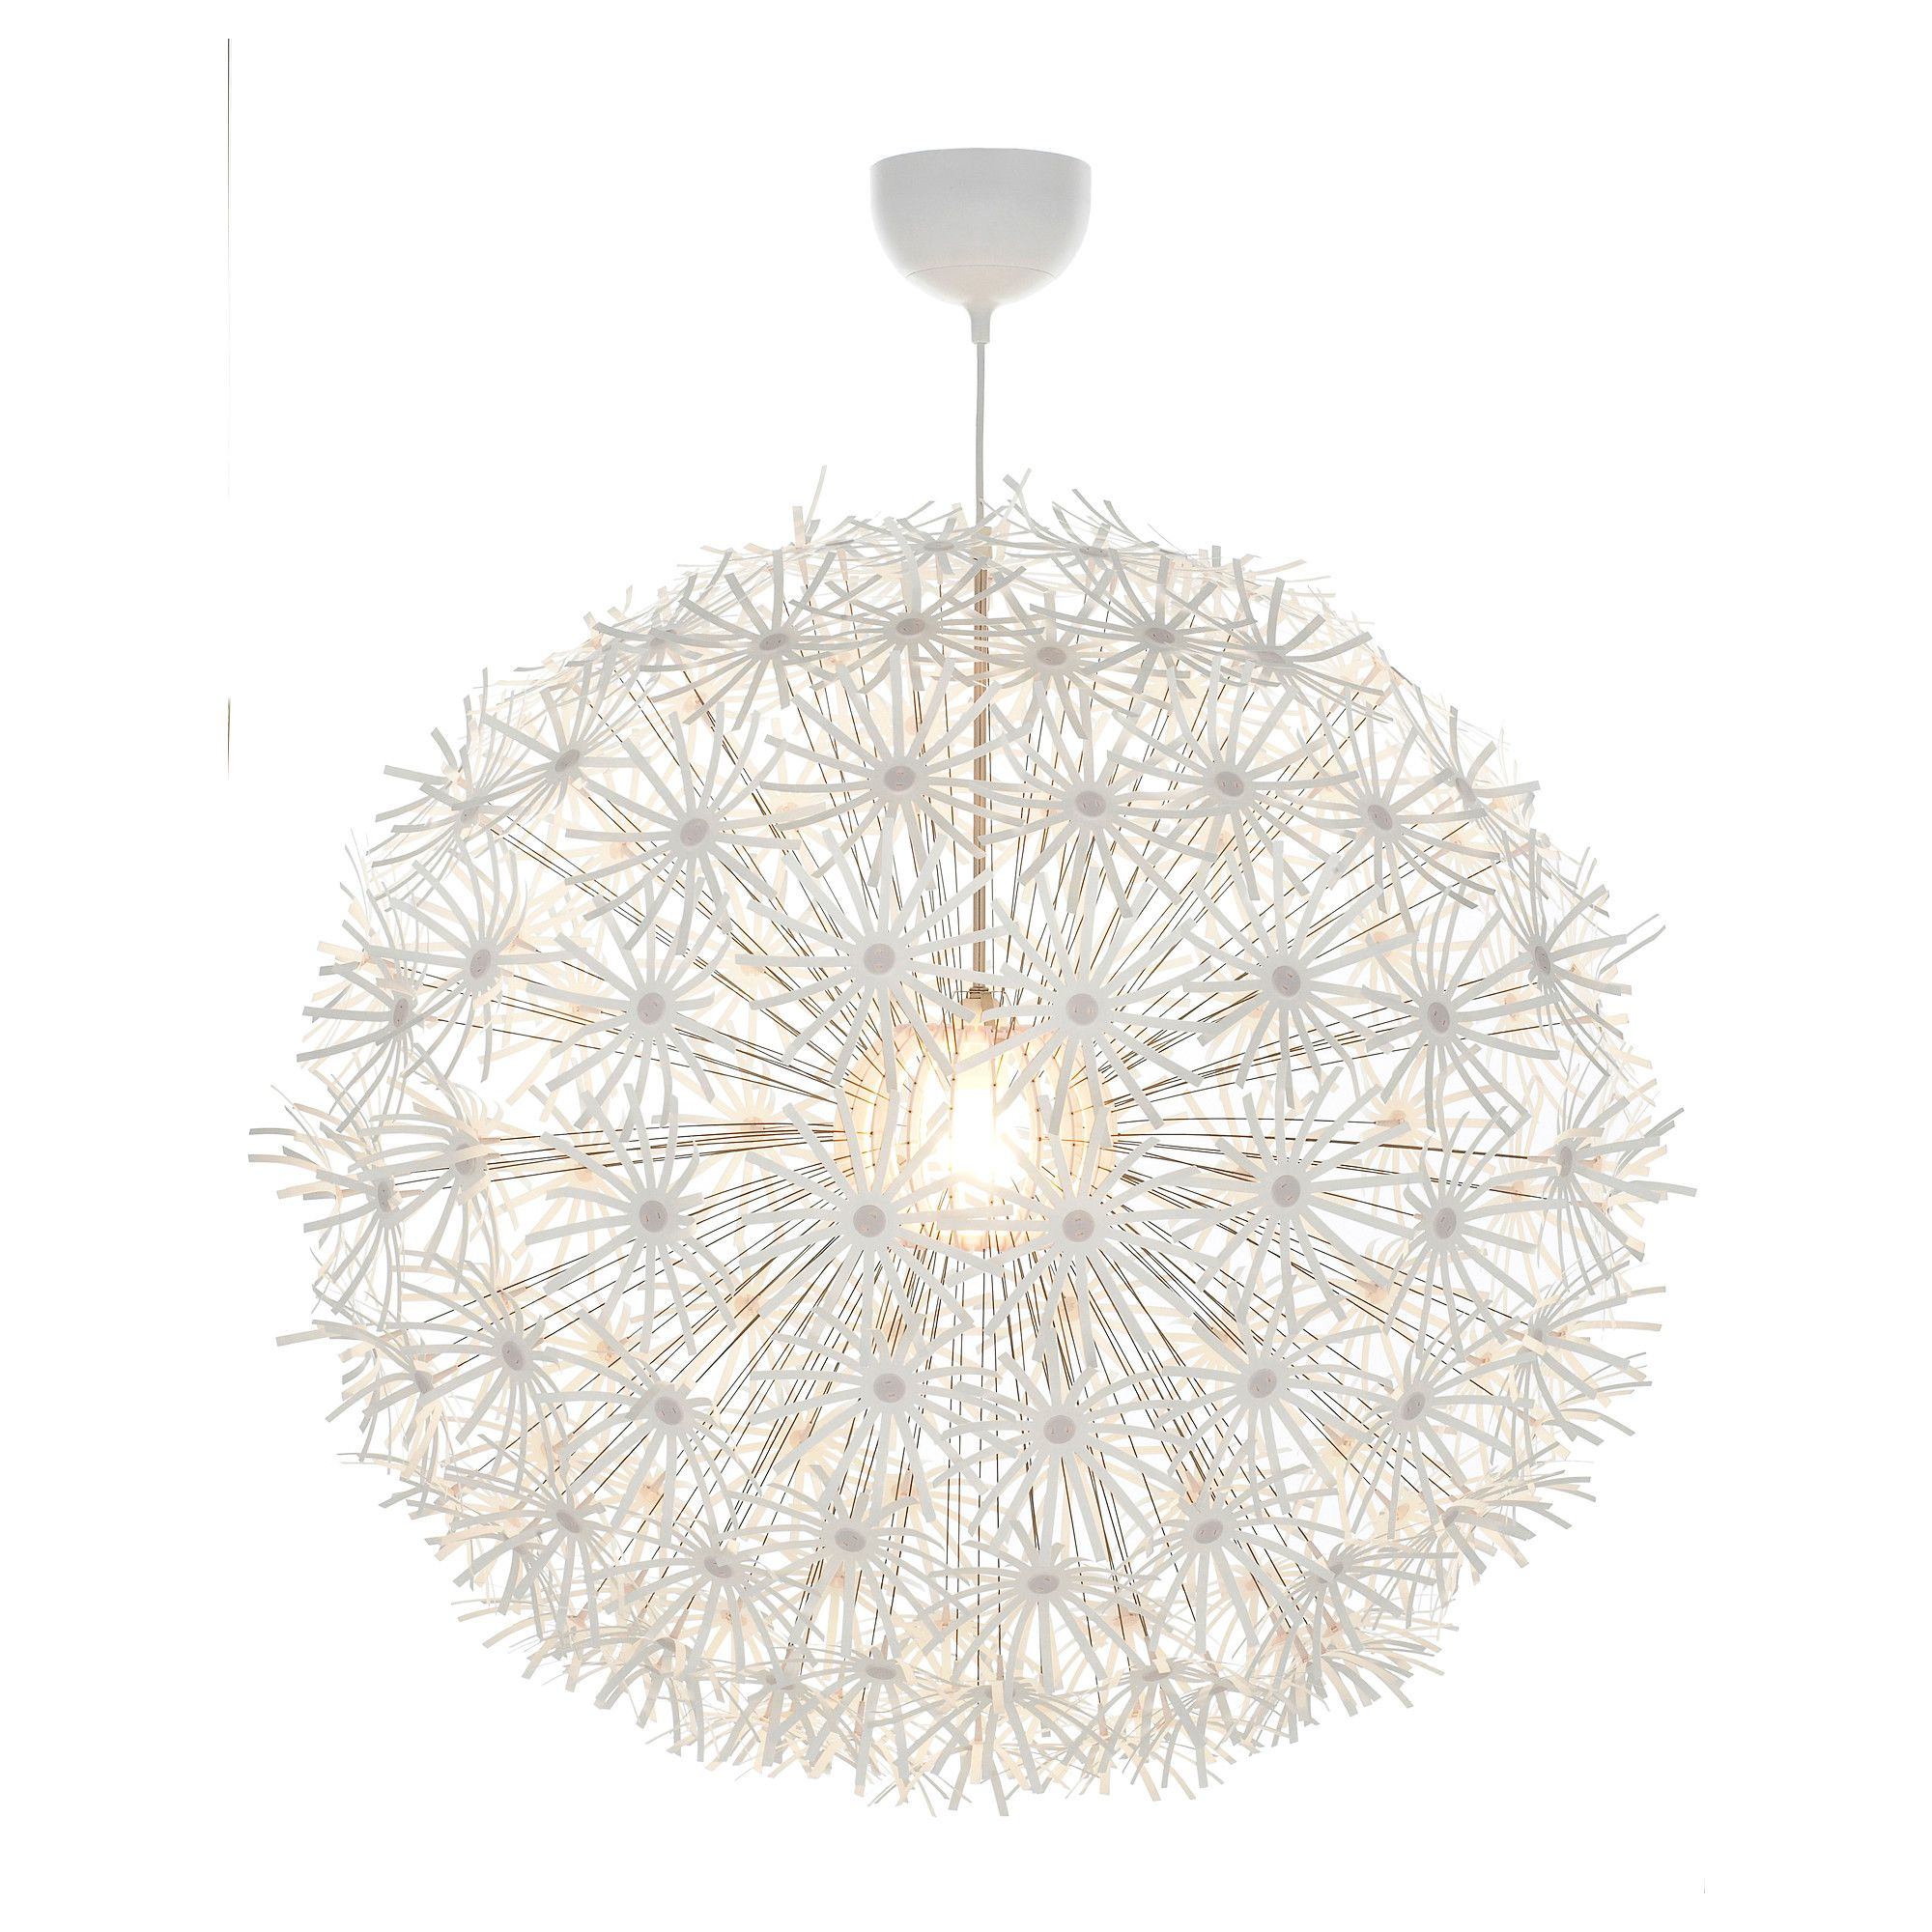 Super Furniture And Home Furnishings Lighting Ikea Chandelier Home Remodeling Inspirations Genioncuboardxyz